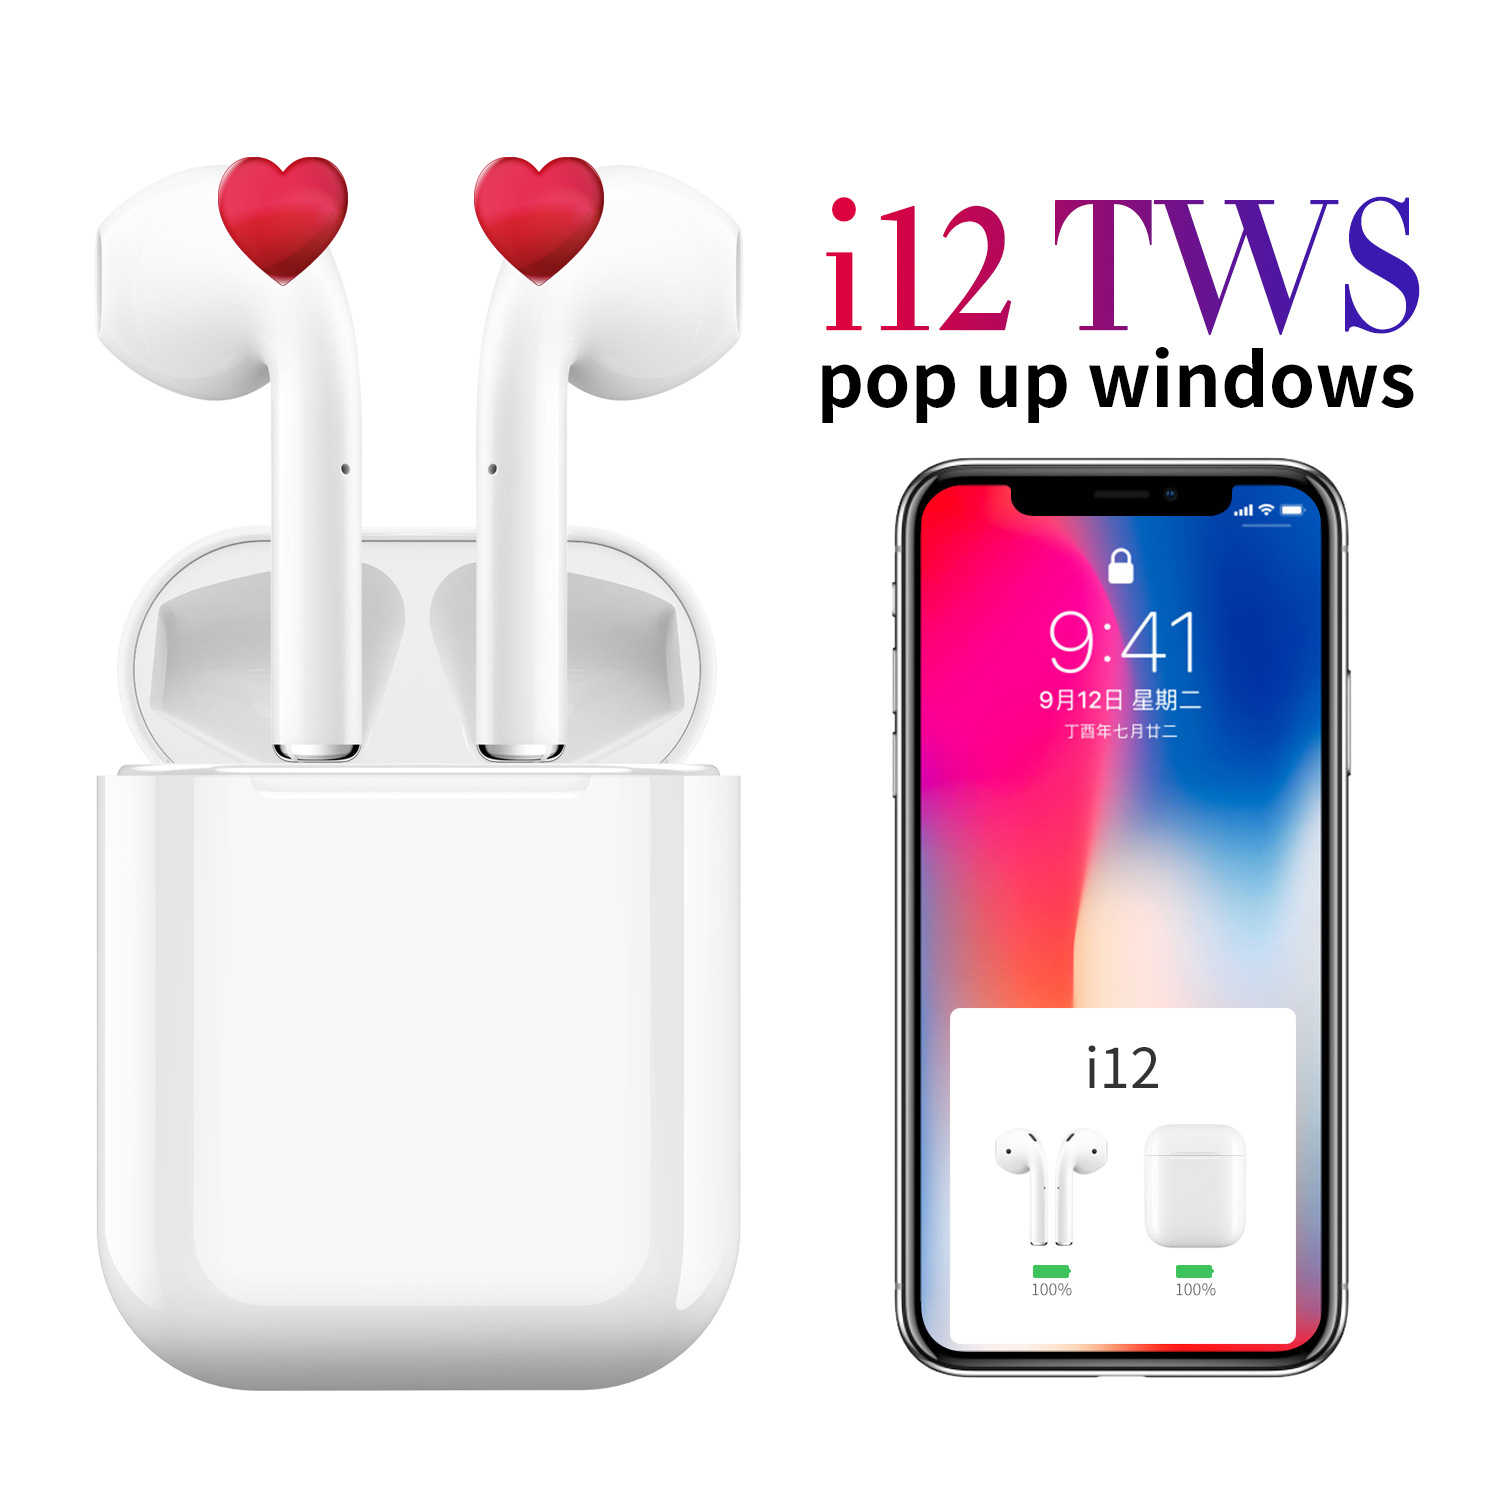 I12 Tws 2019 Asli Matte Bluetooth Earphone Ear Headphone Bluetooth 5.0 Sentuh Pop Up Headset Nirkabel Sport untuk Ponsel Pintar